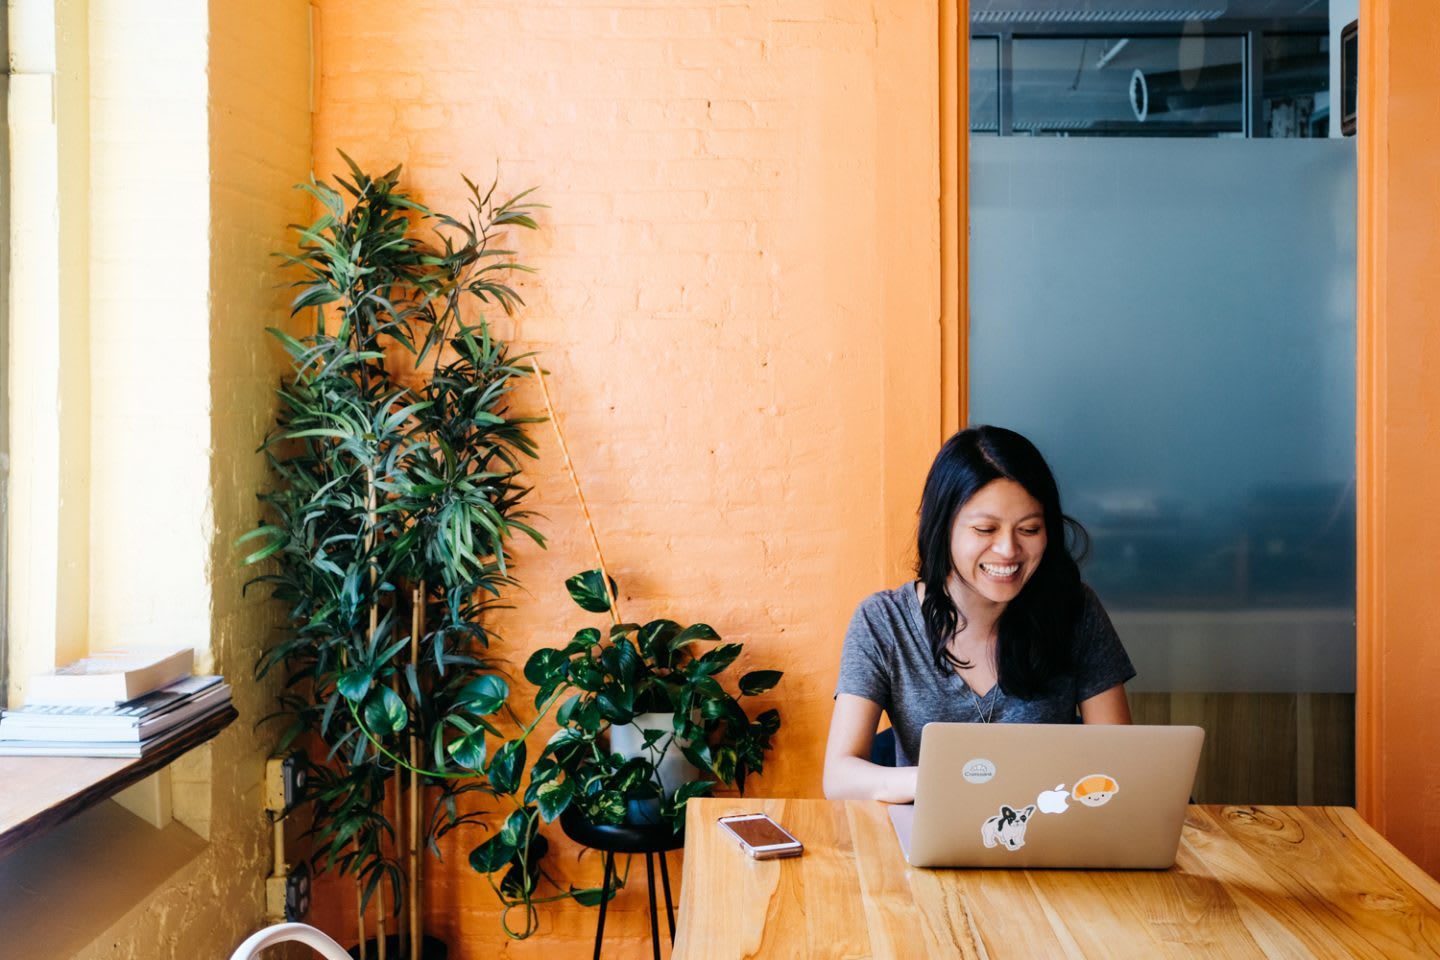 Smiling woman working in cafe with orange walls with laptop surrounded by plants, Georgette Eva, working, happy, inspiration, productivity, new spaces, co-working, GamePlan A